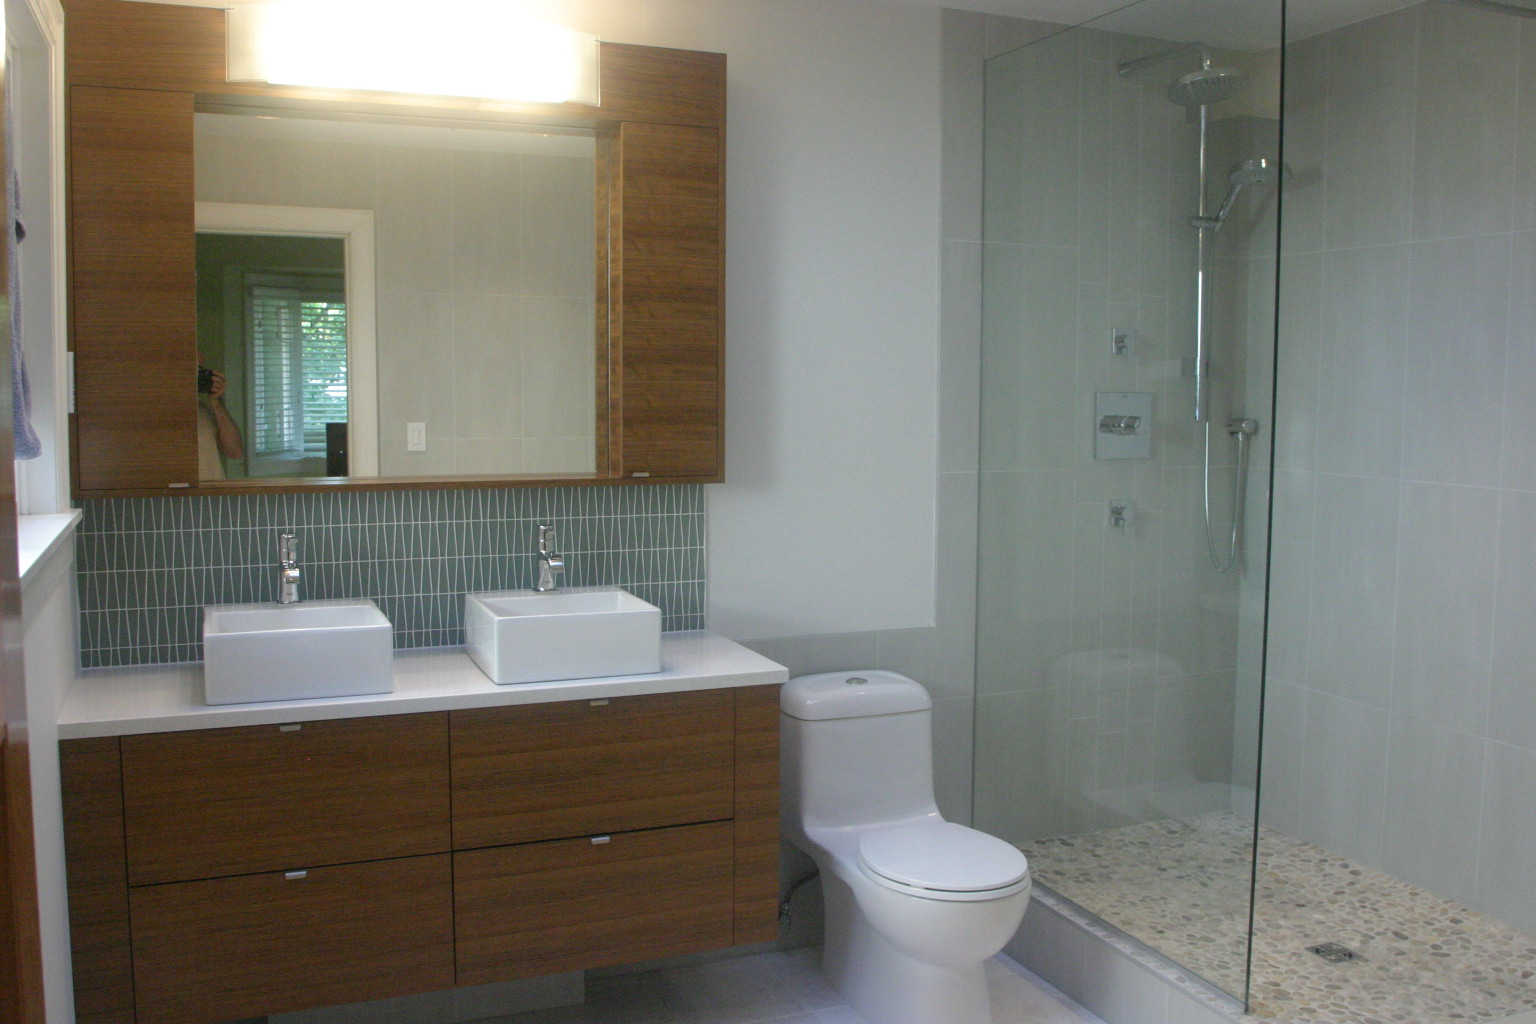 Spa Bathroom Remodel – creating luxury retreats for our clients.